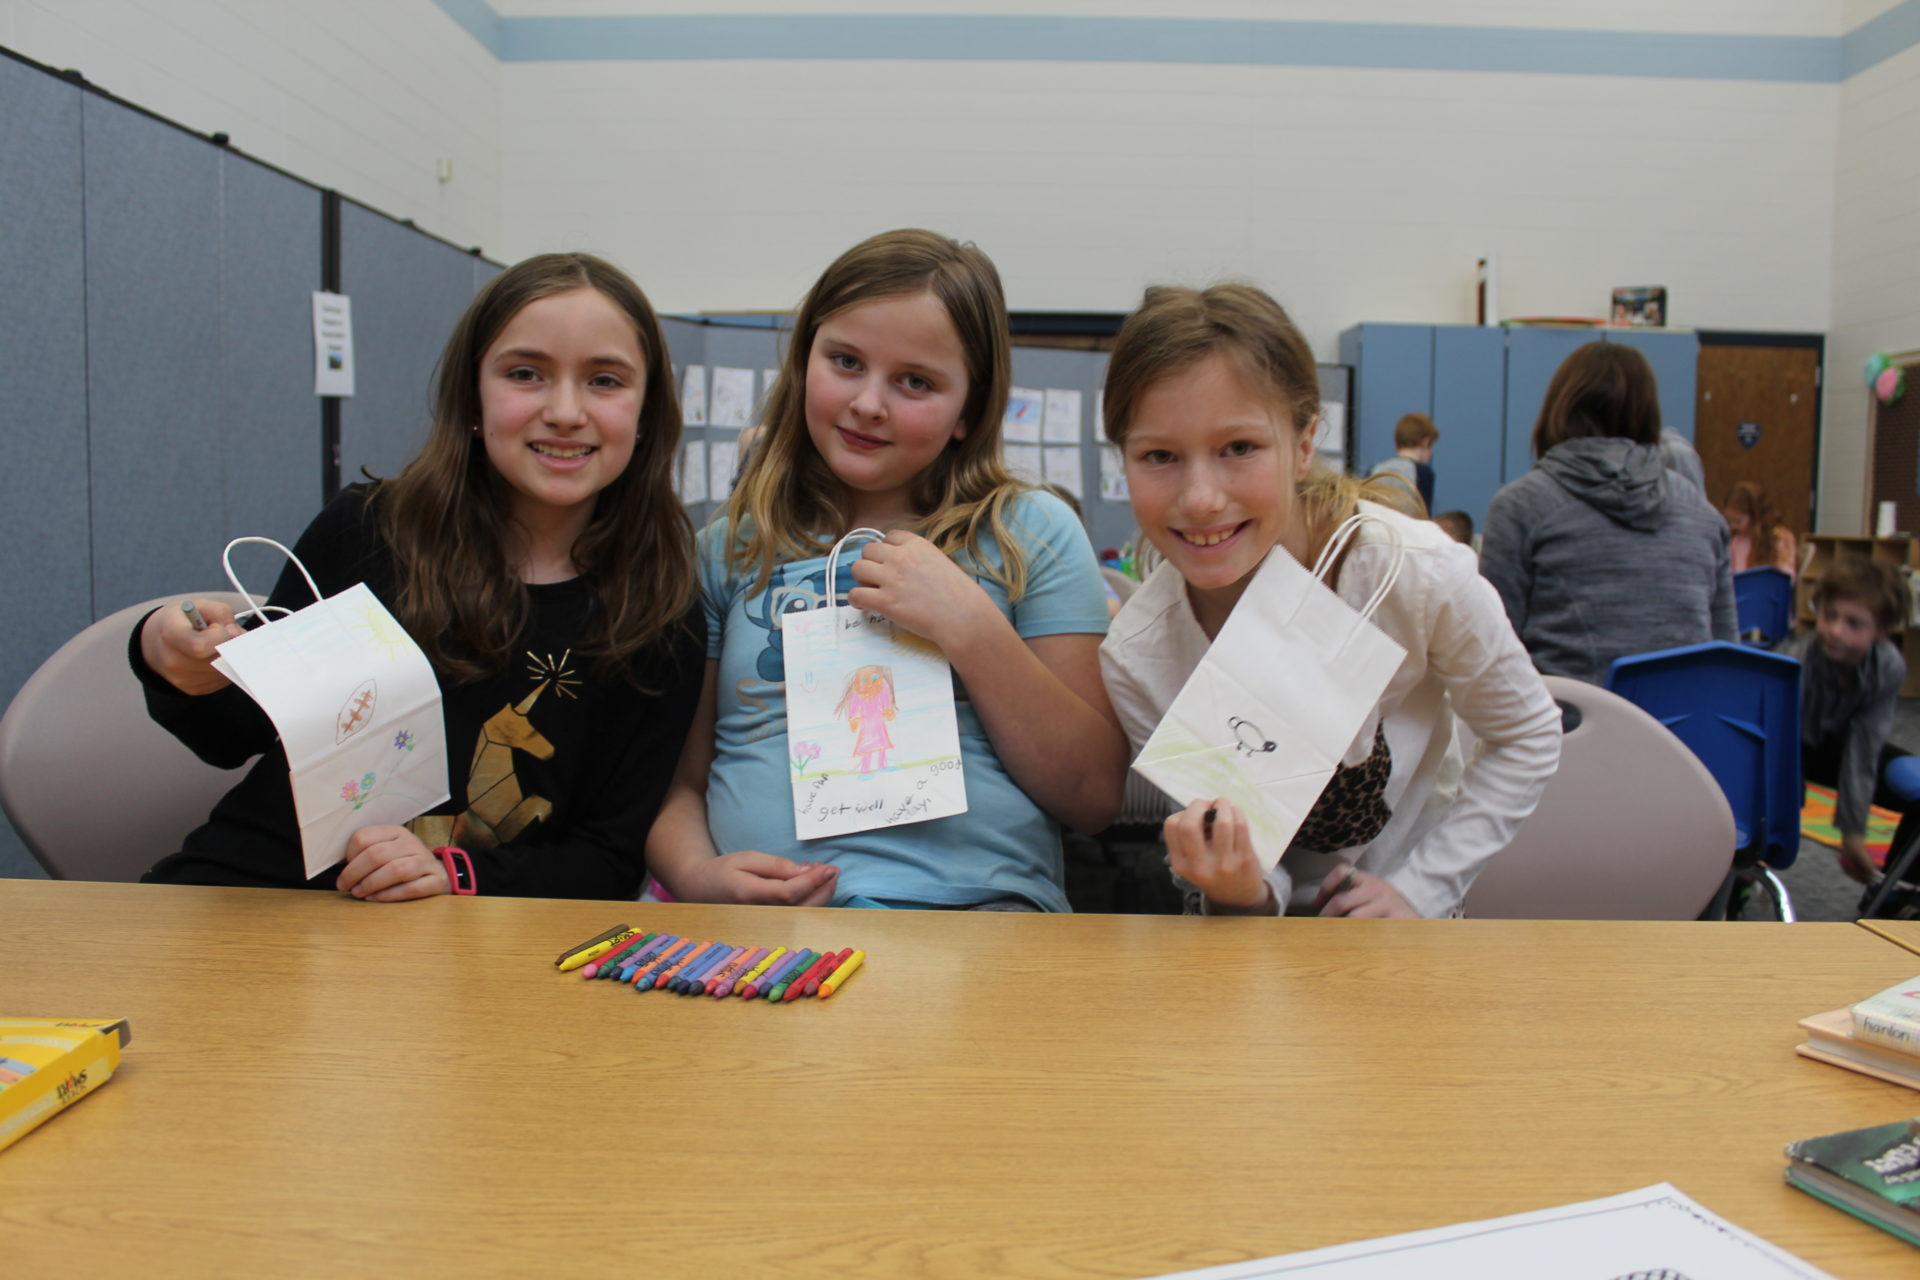 A group of girls show their Valentines bags.